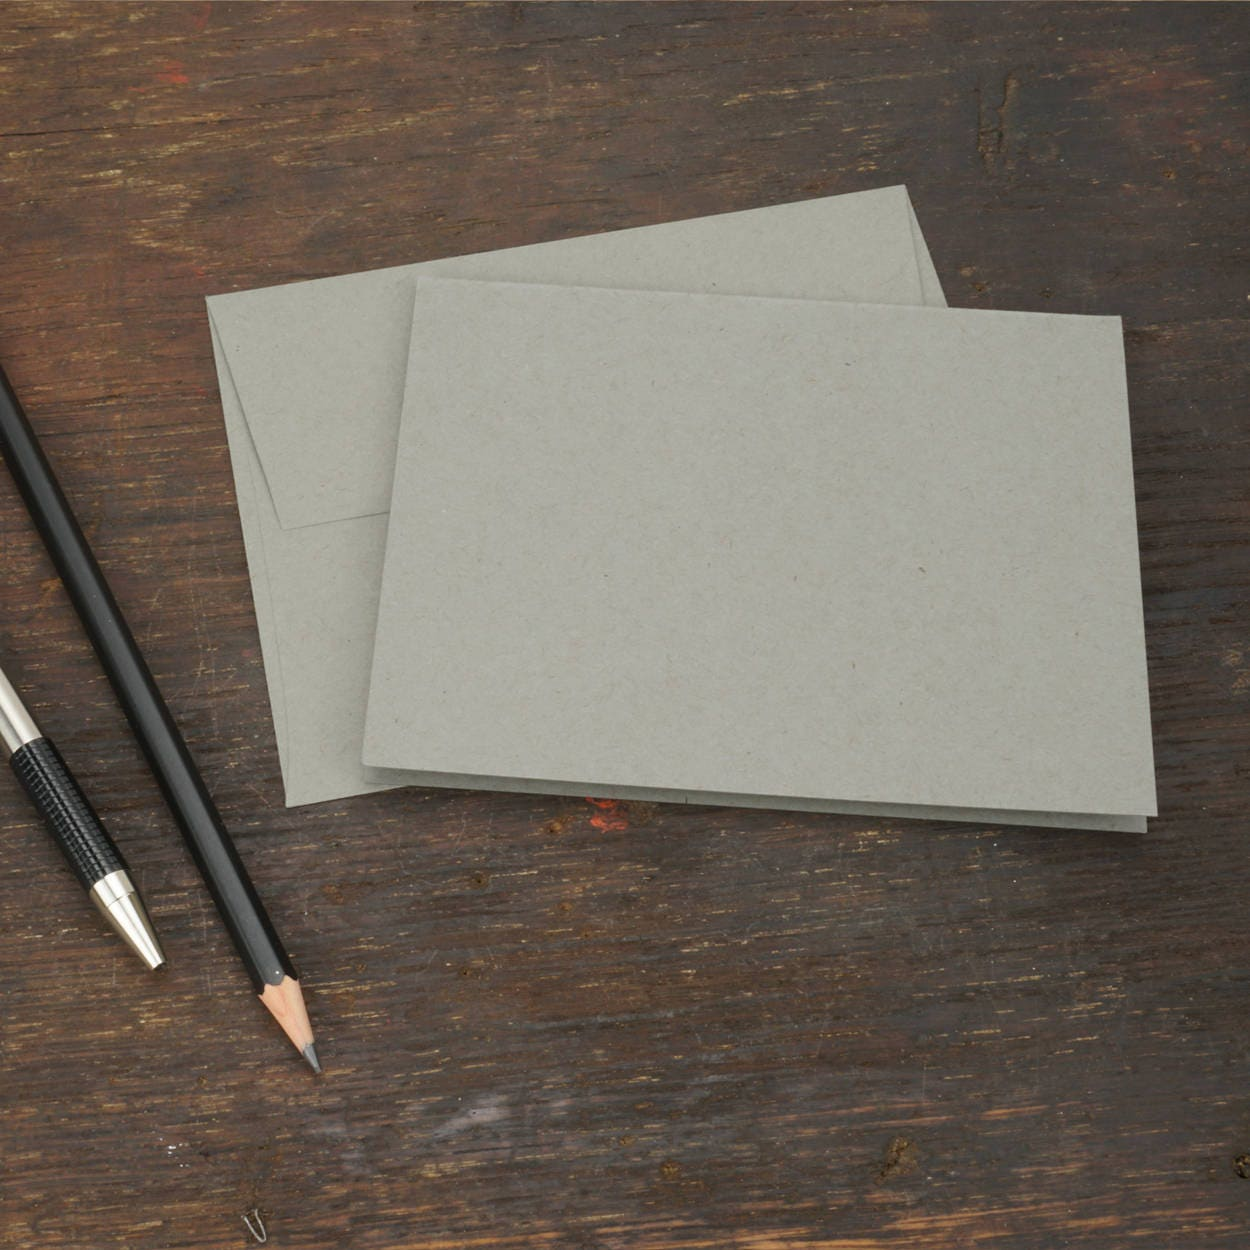 Blank notecards with envelope size a2 gray cards and envelopes blank notecards with envelope size a2 gray cards and envelopes recycled paper blank envelopes blank cards 425 x 55 in set of 25 reheart Gallery